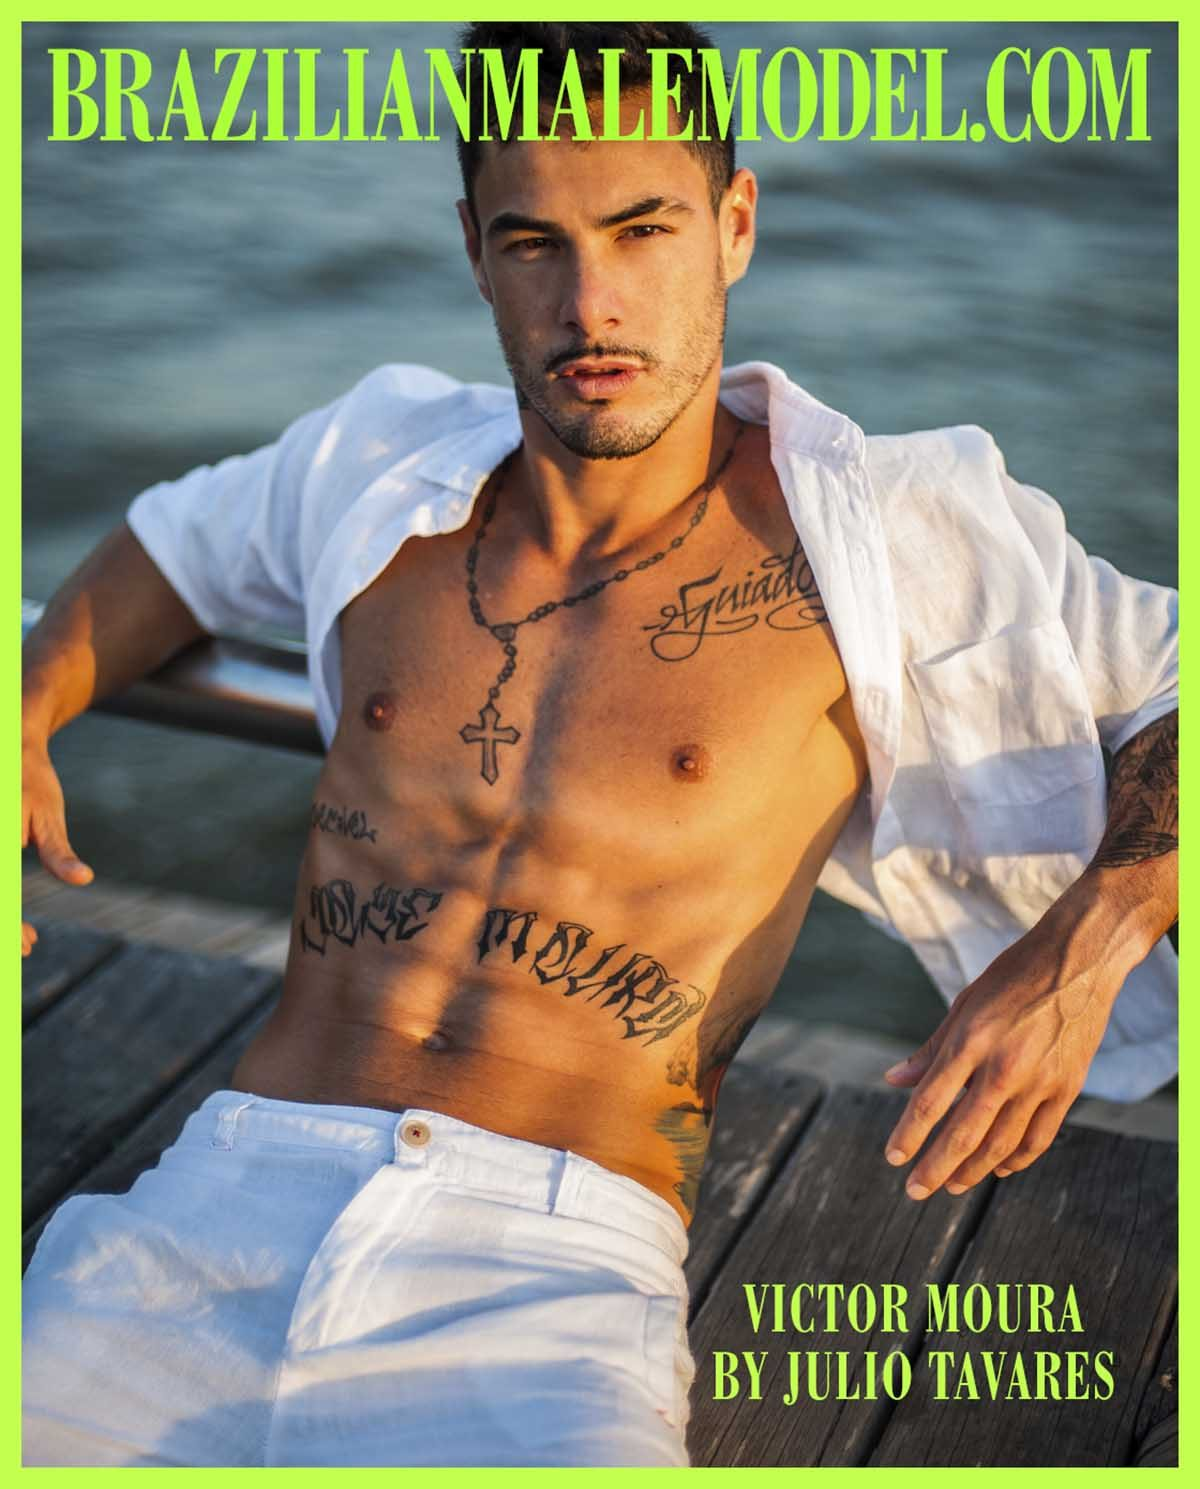 Victor Moura by Julio Tavares